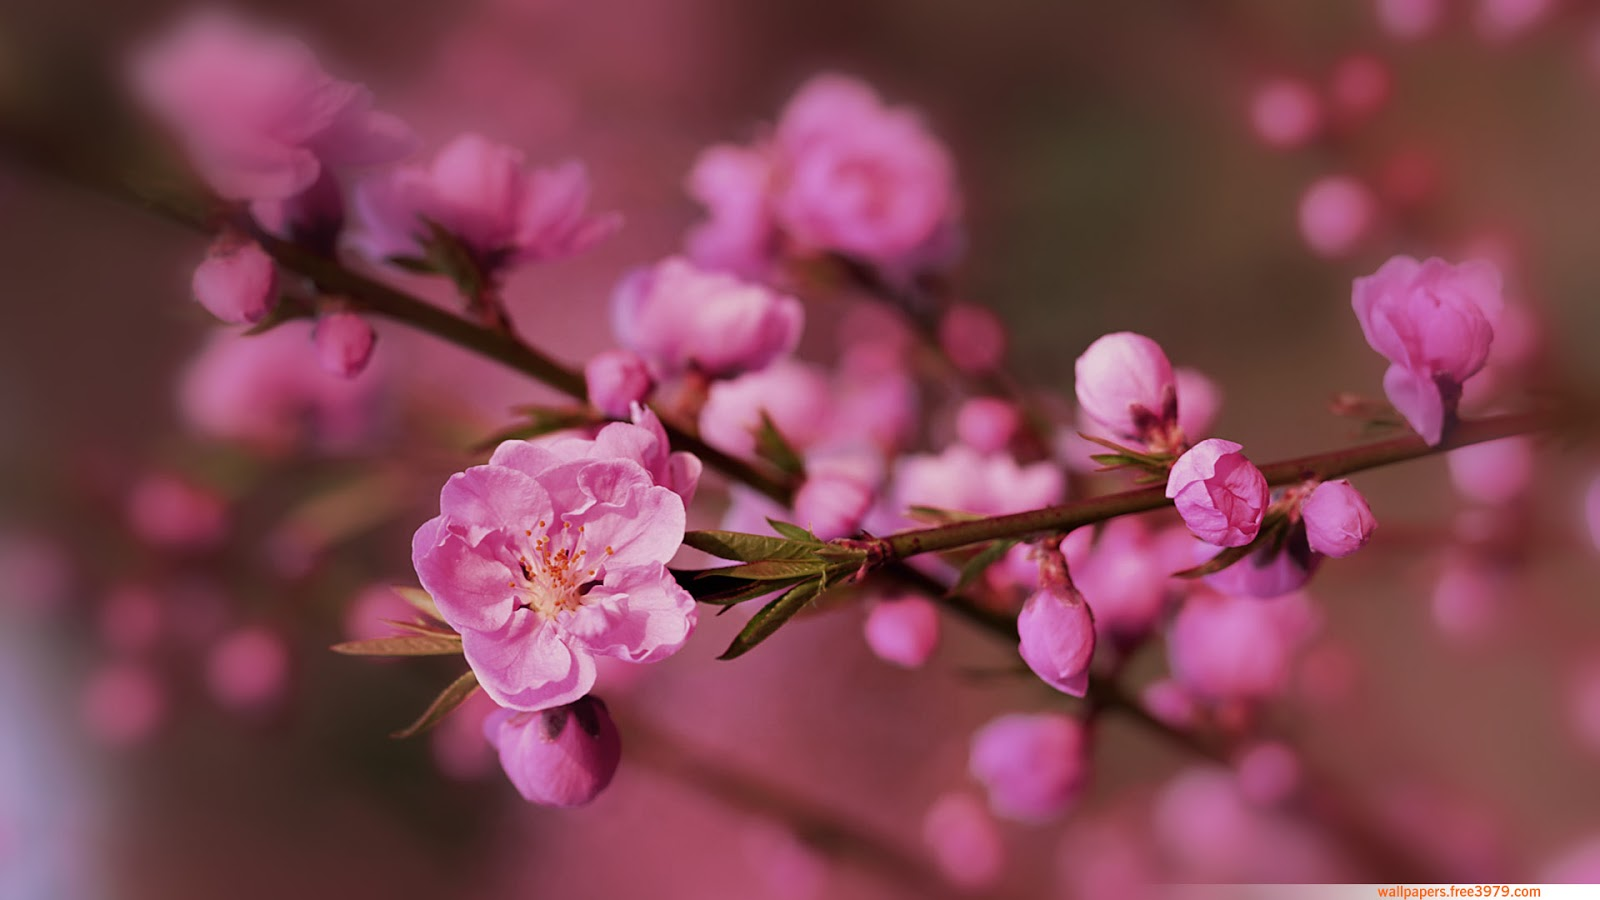 Wallpapers Cherry Blossom Wallpapers Wallpaper Cherry Blossom Wallpaper